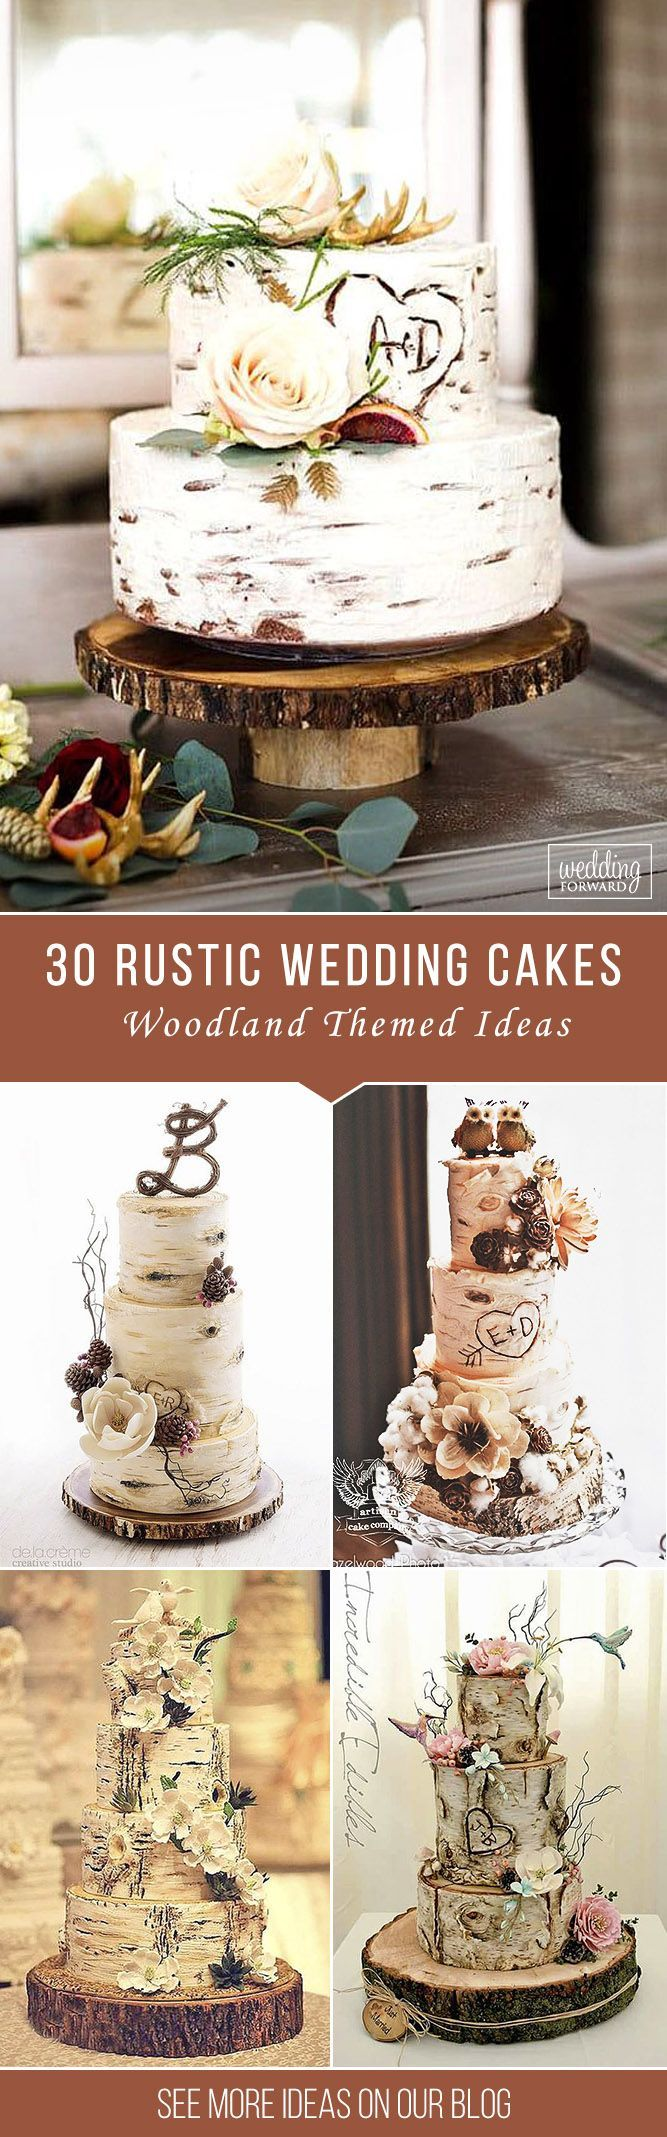 Wedding decoration ideas in kerala   MustSee Rustic Woodland Themed Wedding Cakes  Cool WEDDING